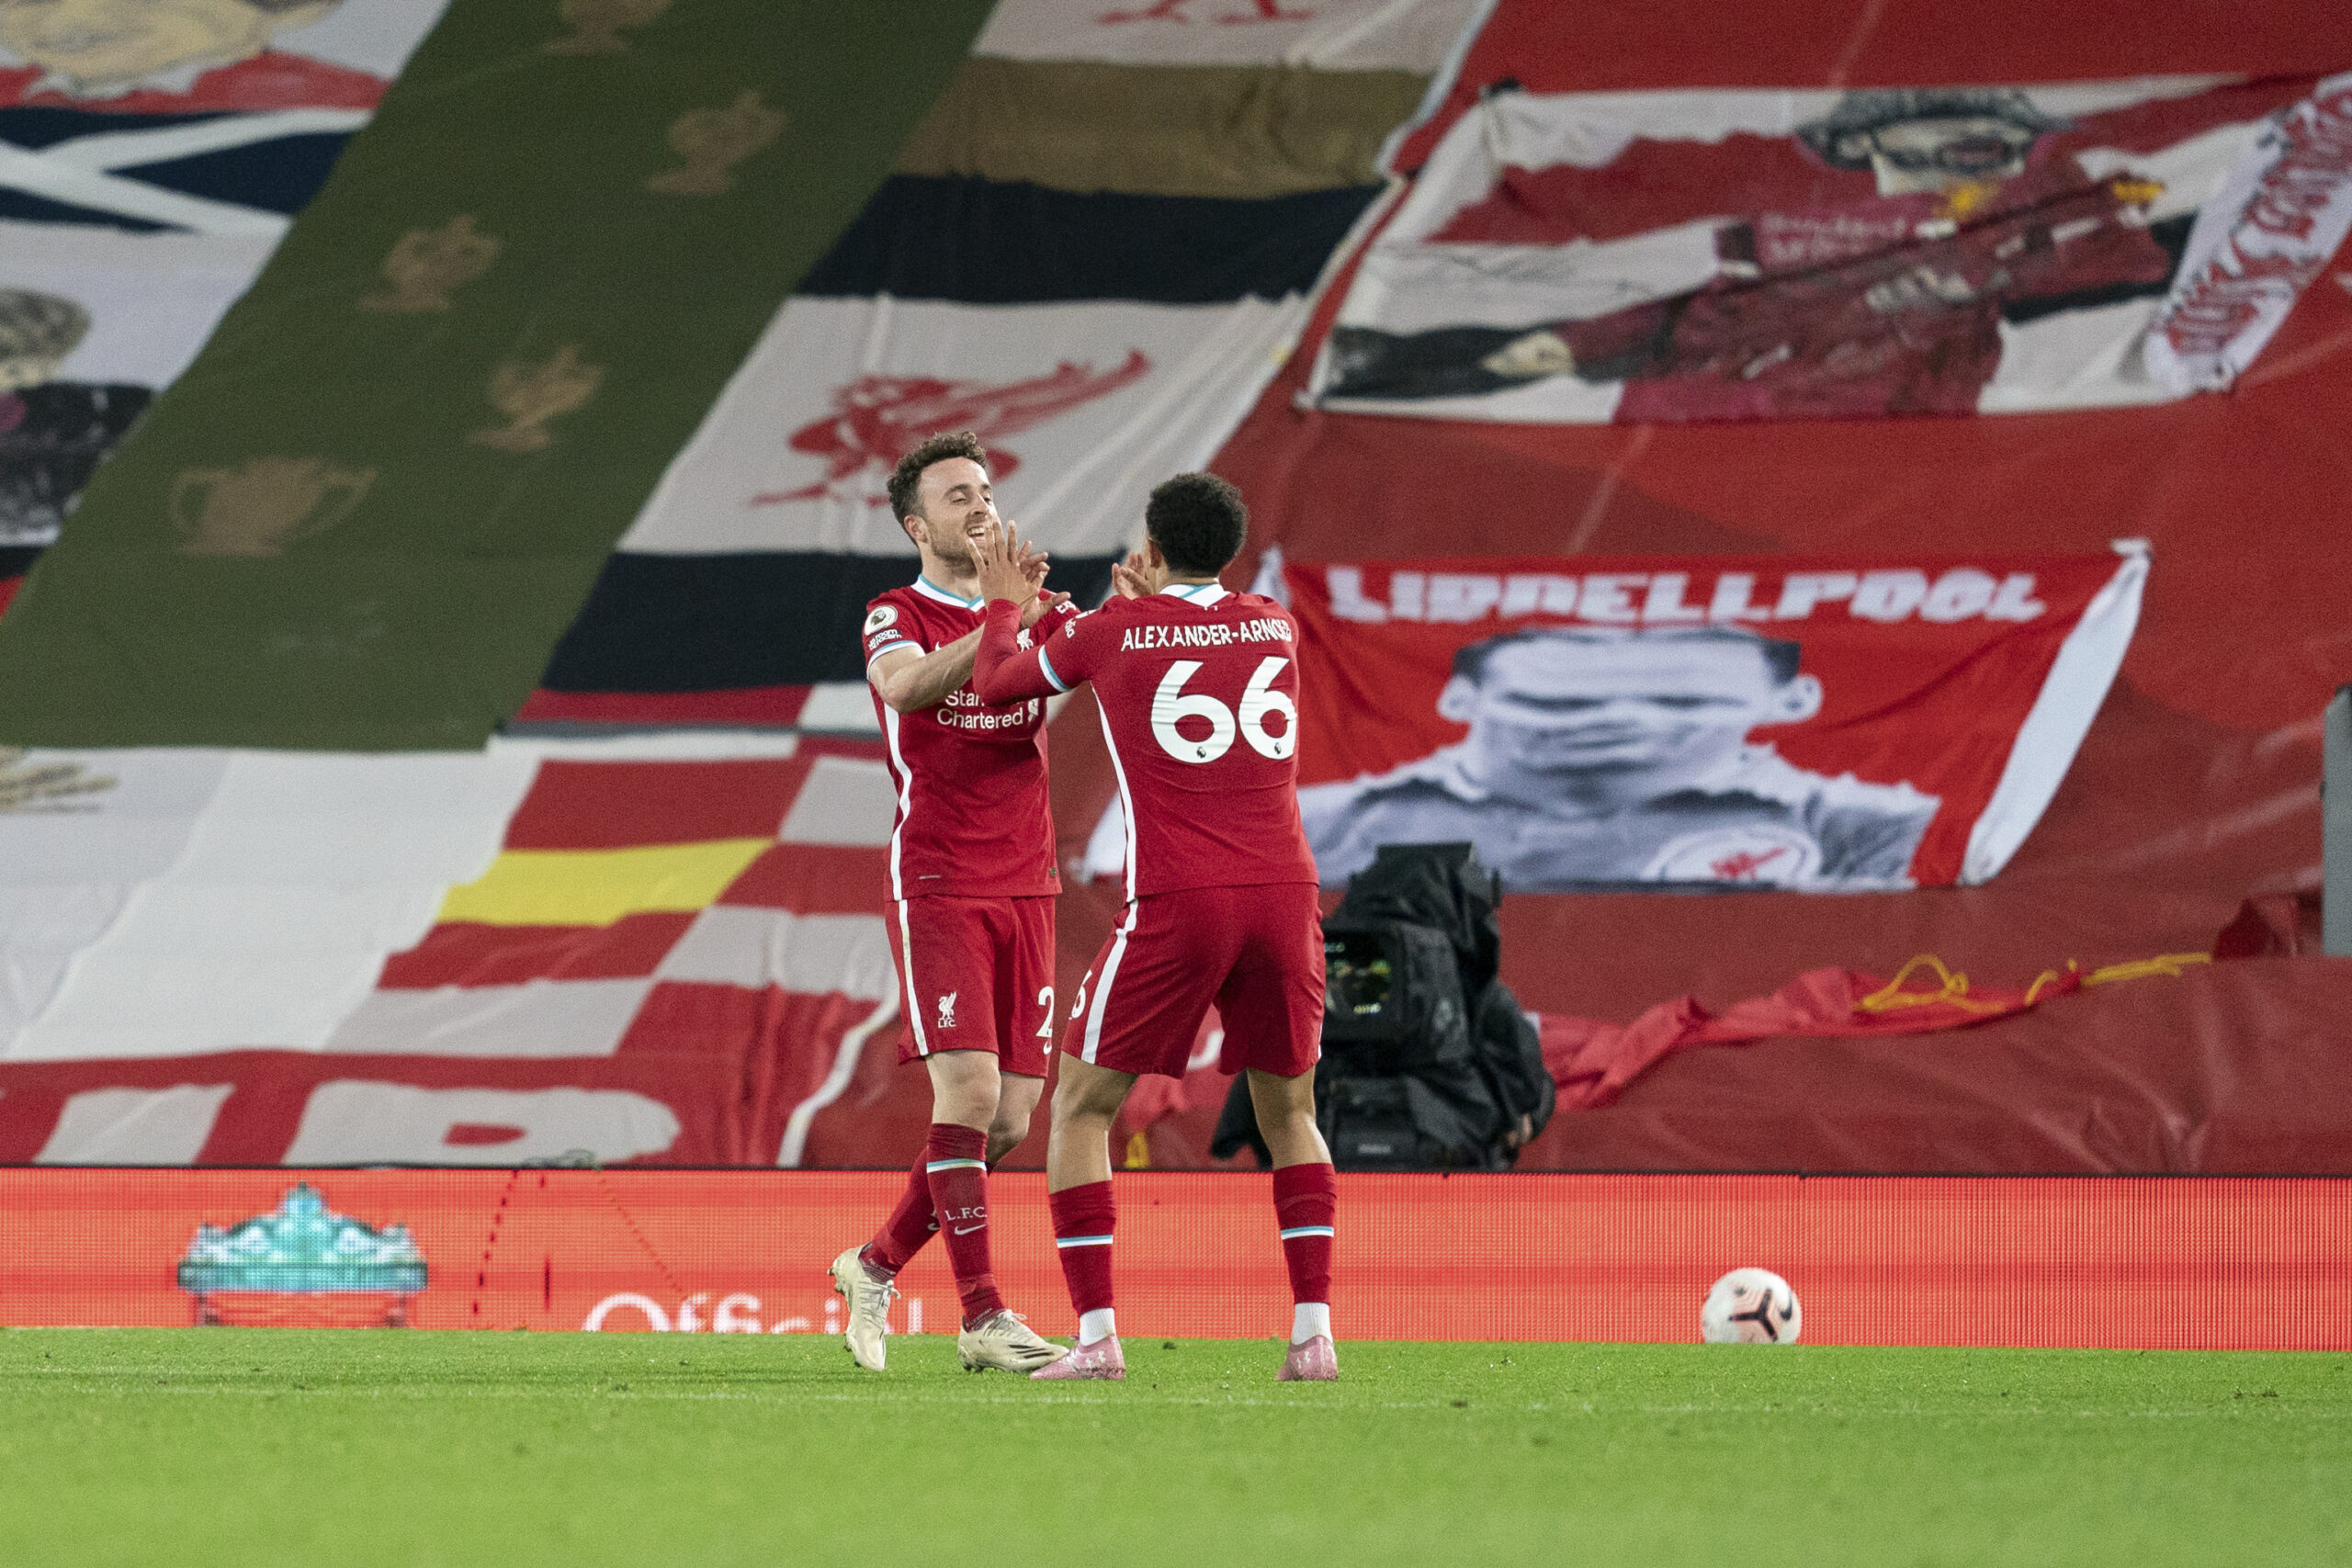 Liverpool 2 Sheffield United 1: What We Learned | The Anfield Wrap